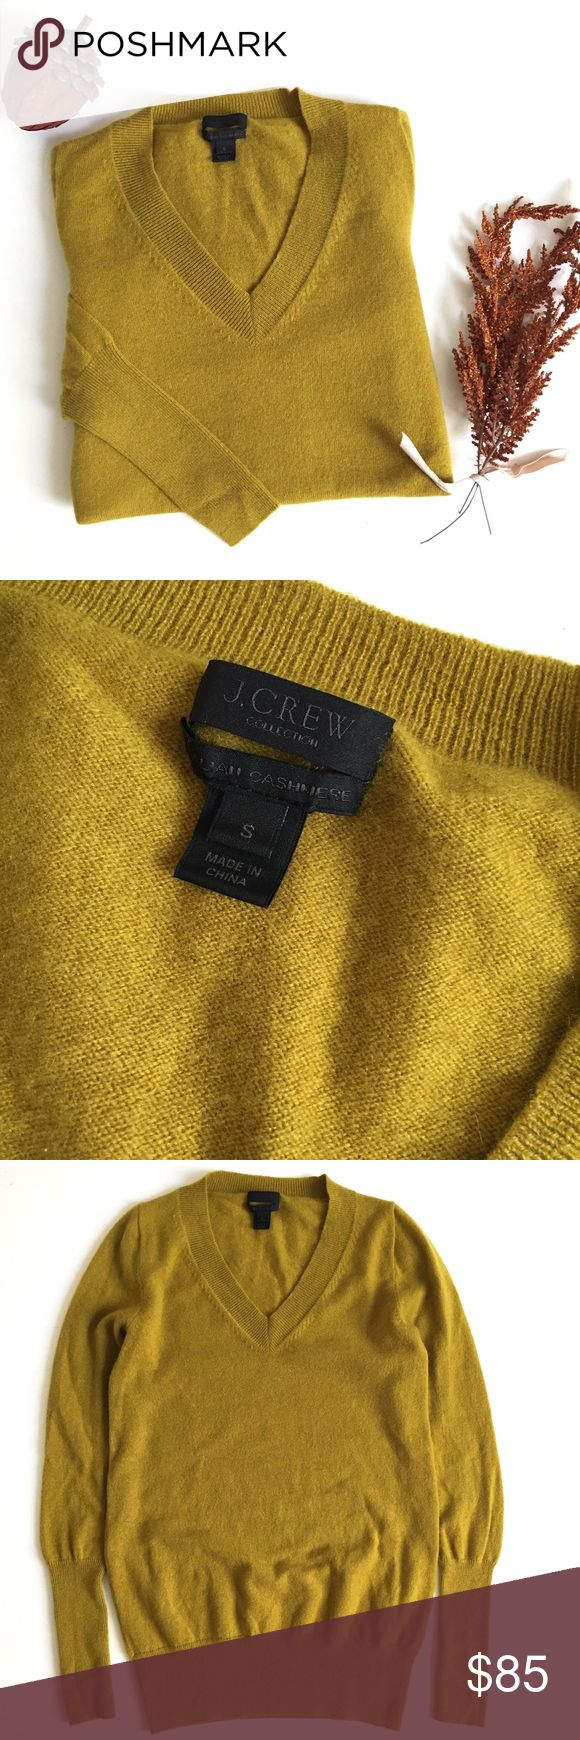 J. Crew Italian Cashmere V-Neck Sweater ▫️J. Crew Cashmere Sweater  ▫️Italian cashmere in a 12-gauge knit ▫️Color is slightly off due to lighting ▫️Excellent Preowned Condition  No Trades J. Crew Sweaters V-Necks